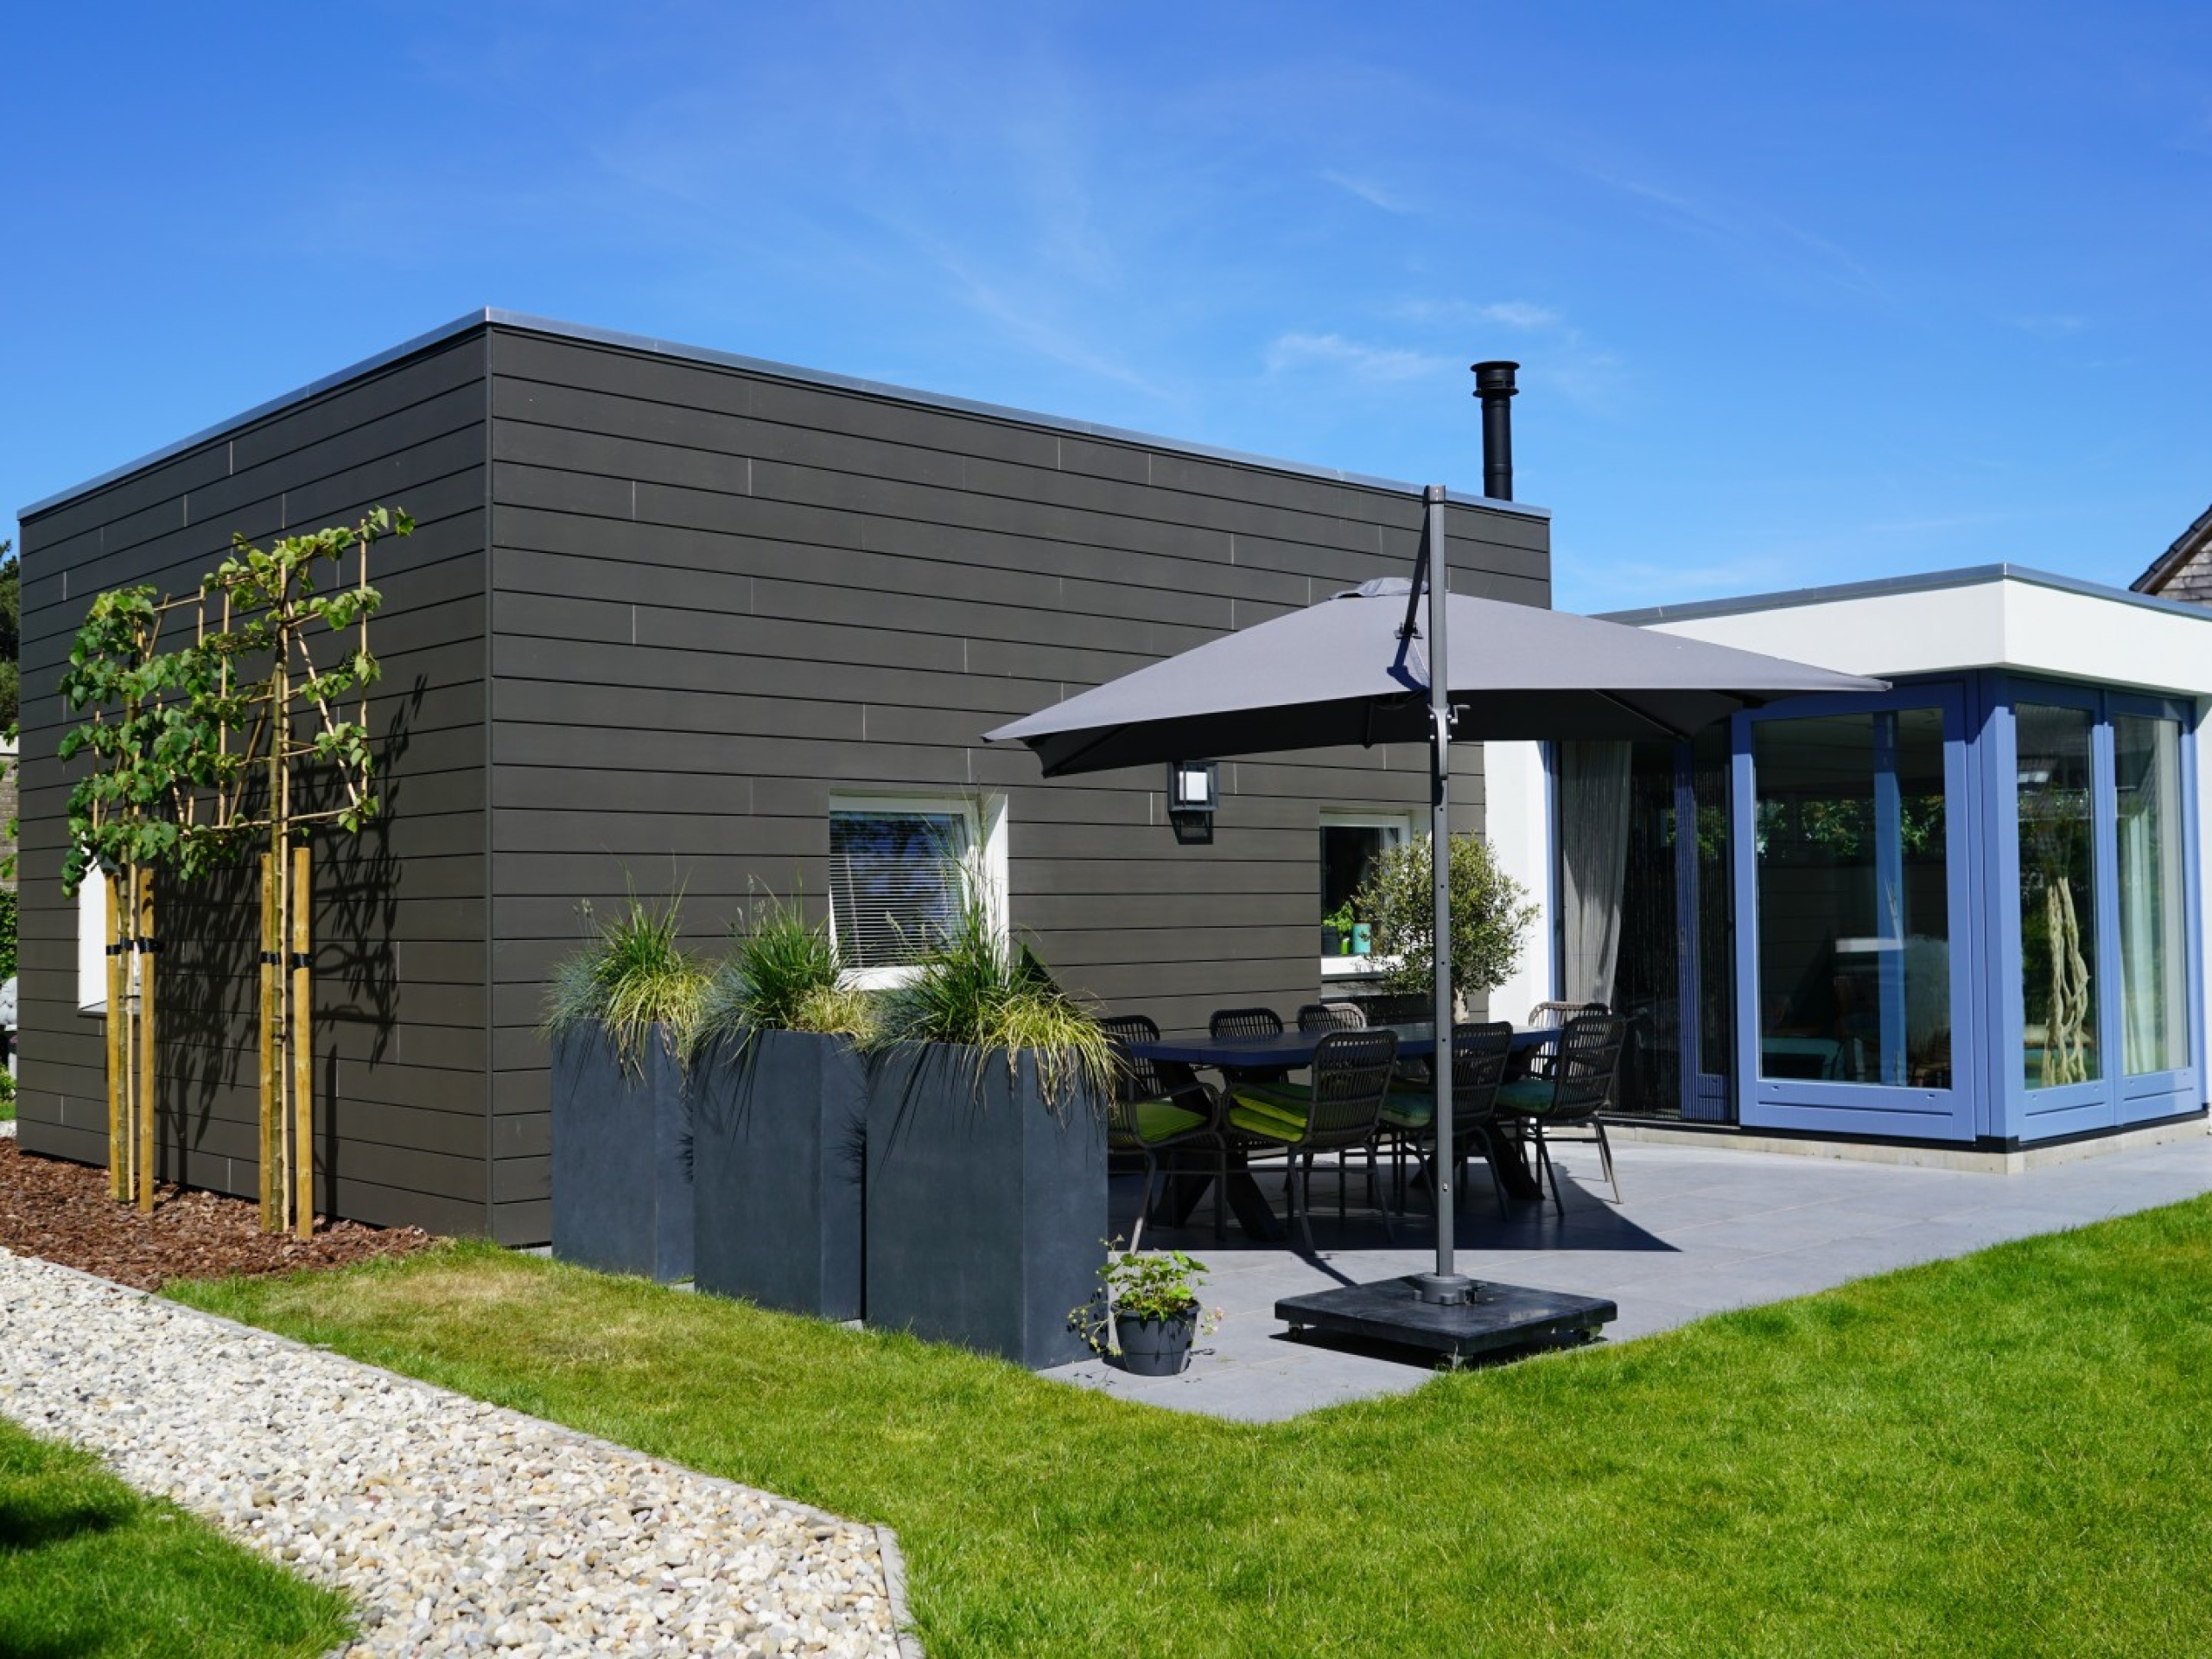 Detached holiday home 5 minutes by bike from the North Sea beach